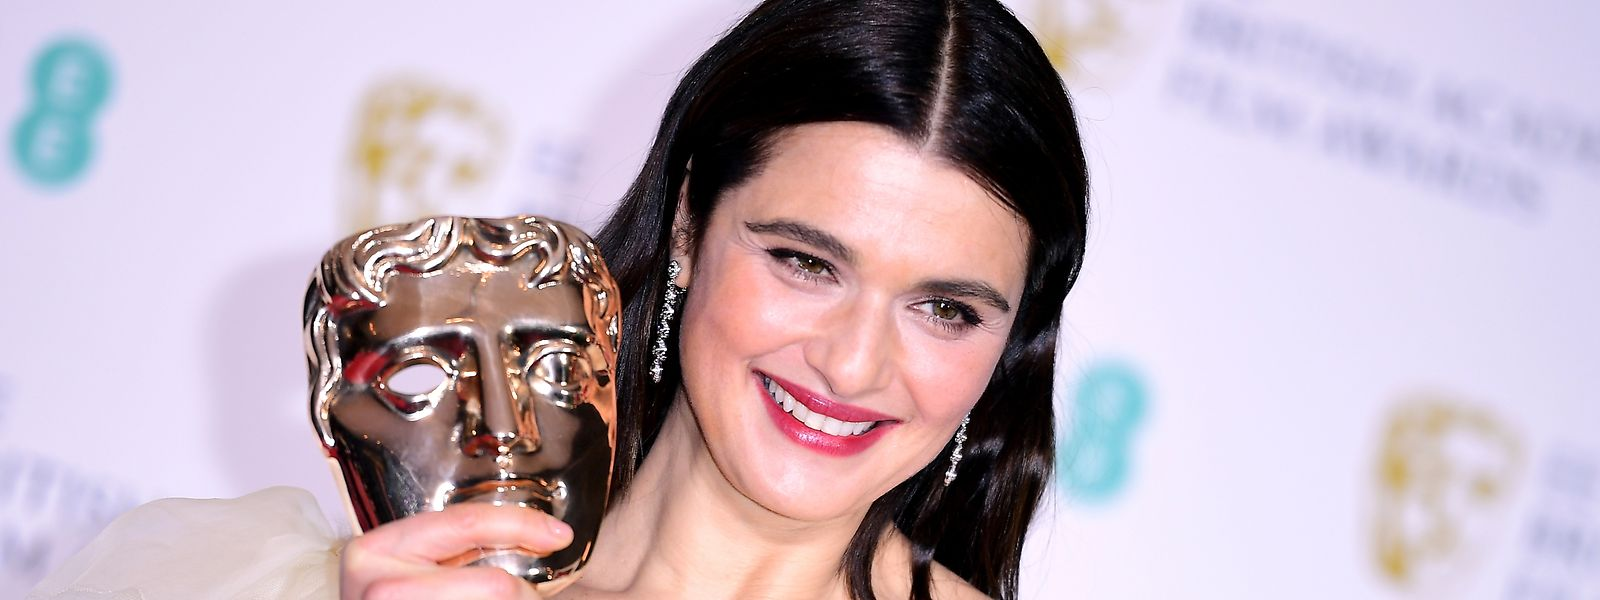 10.02.2019, Großbritannien, London: Rachel Weisz («The Favourite») hält ihre Auszeichnung als beste Nebendarstellerin im Presseraum bei den 72. British Academy Film Awards in der Royal Albert Hall. Foto: Ian West/PA Wire/dpa +++ dpa-Bildfunk +++